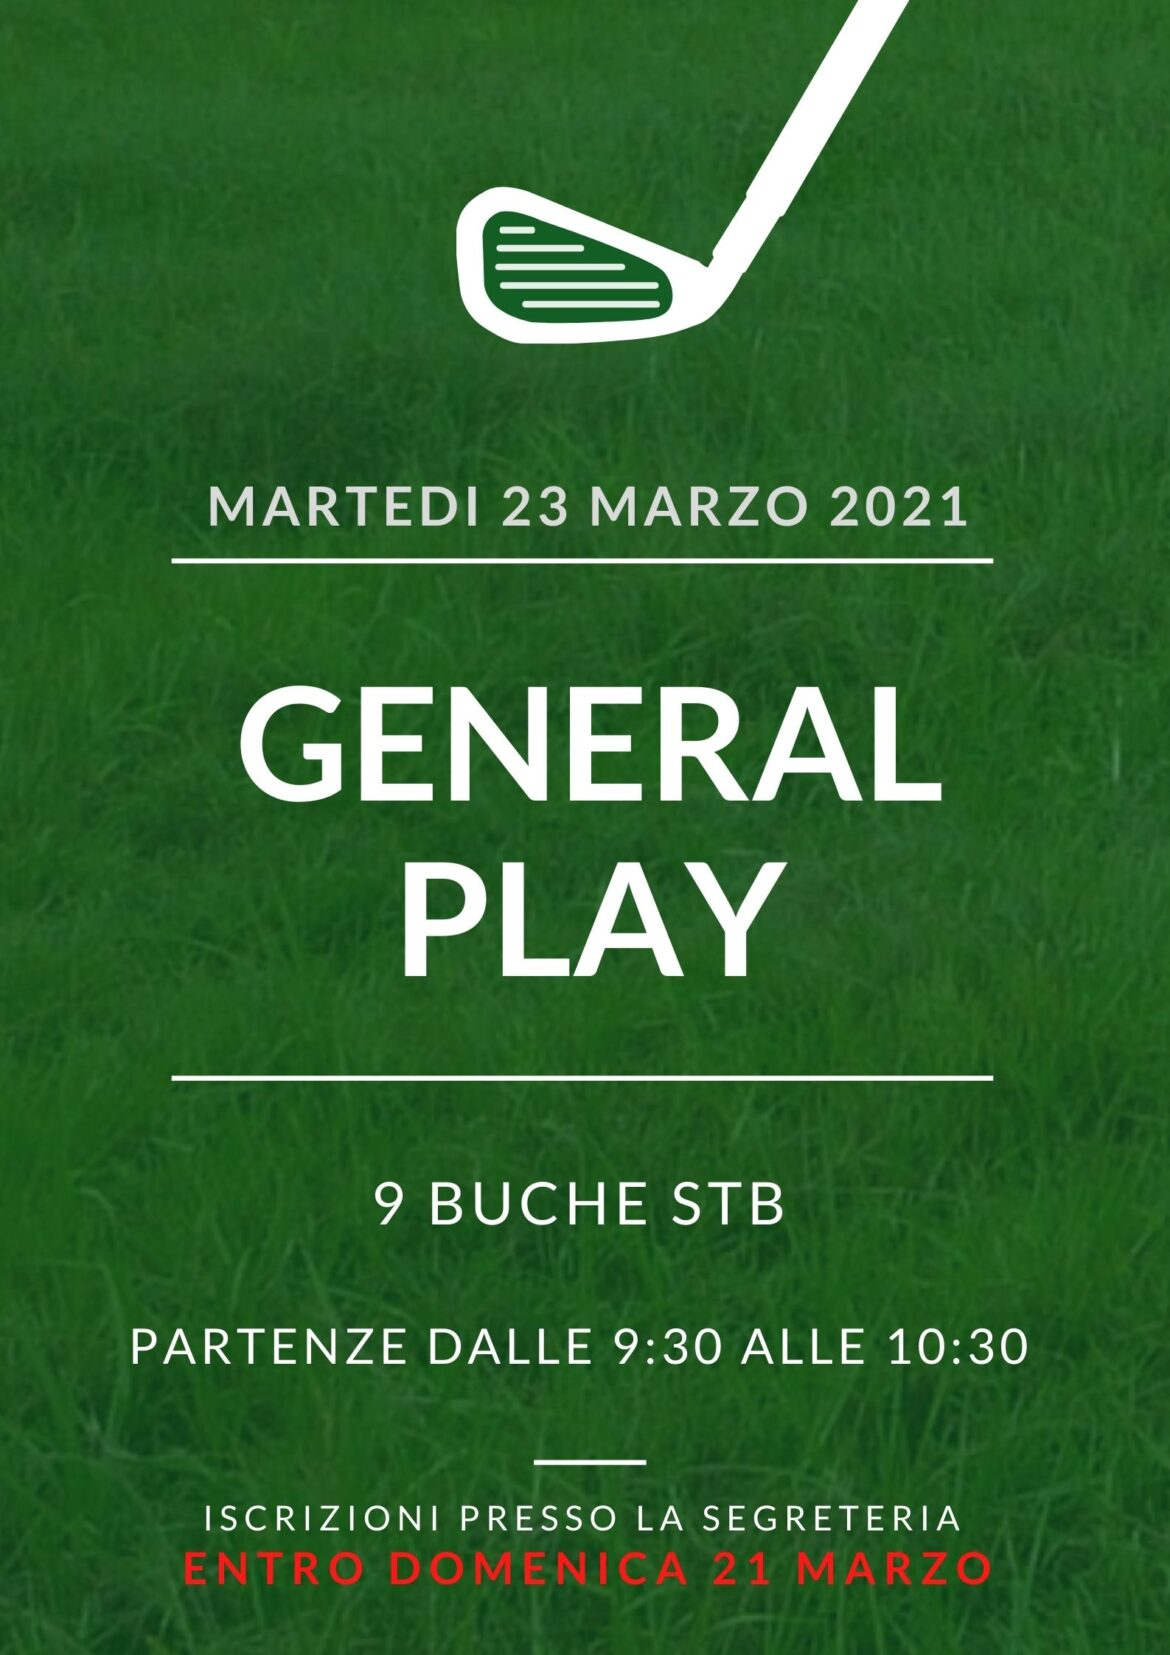 GENERAL PLAY del 23 marzo 2021